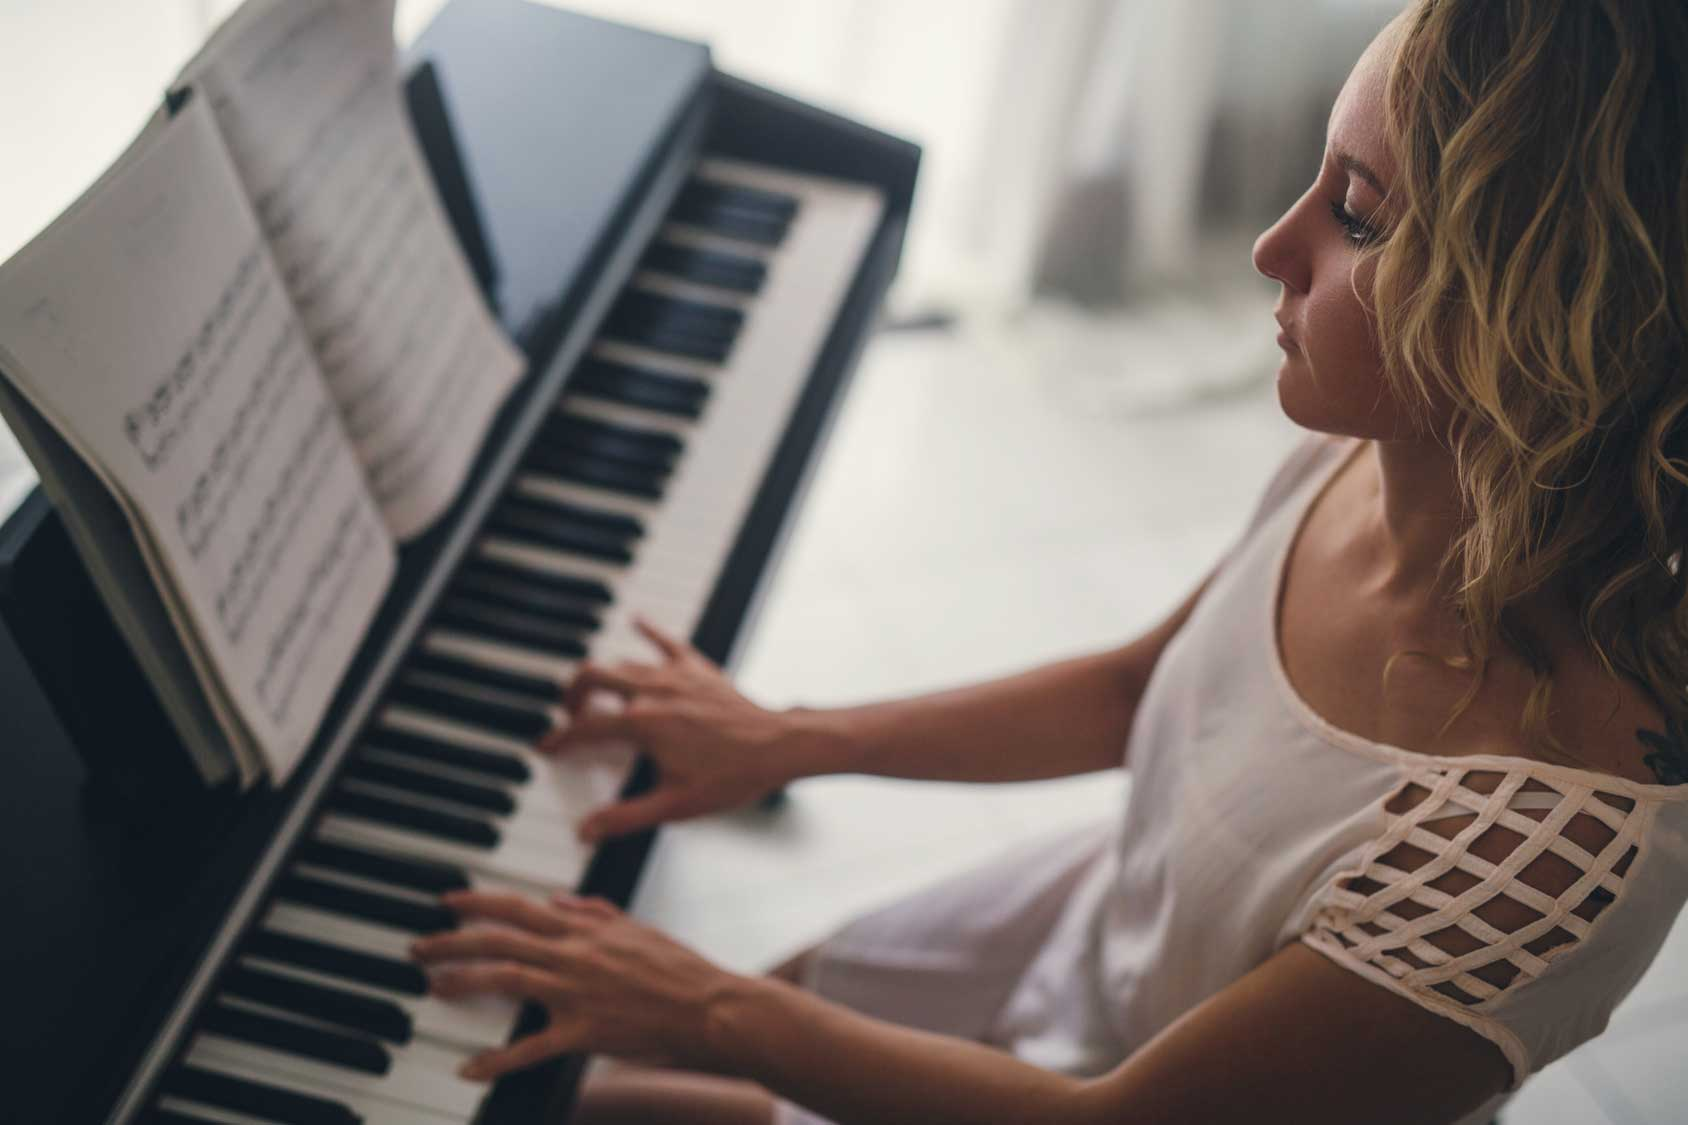 Free Piano Sheet Music For Beginners To Learn The One